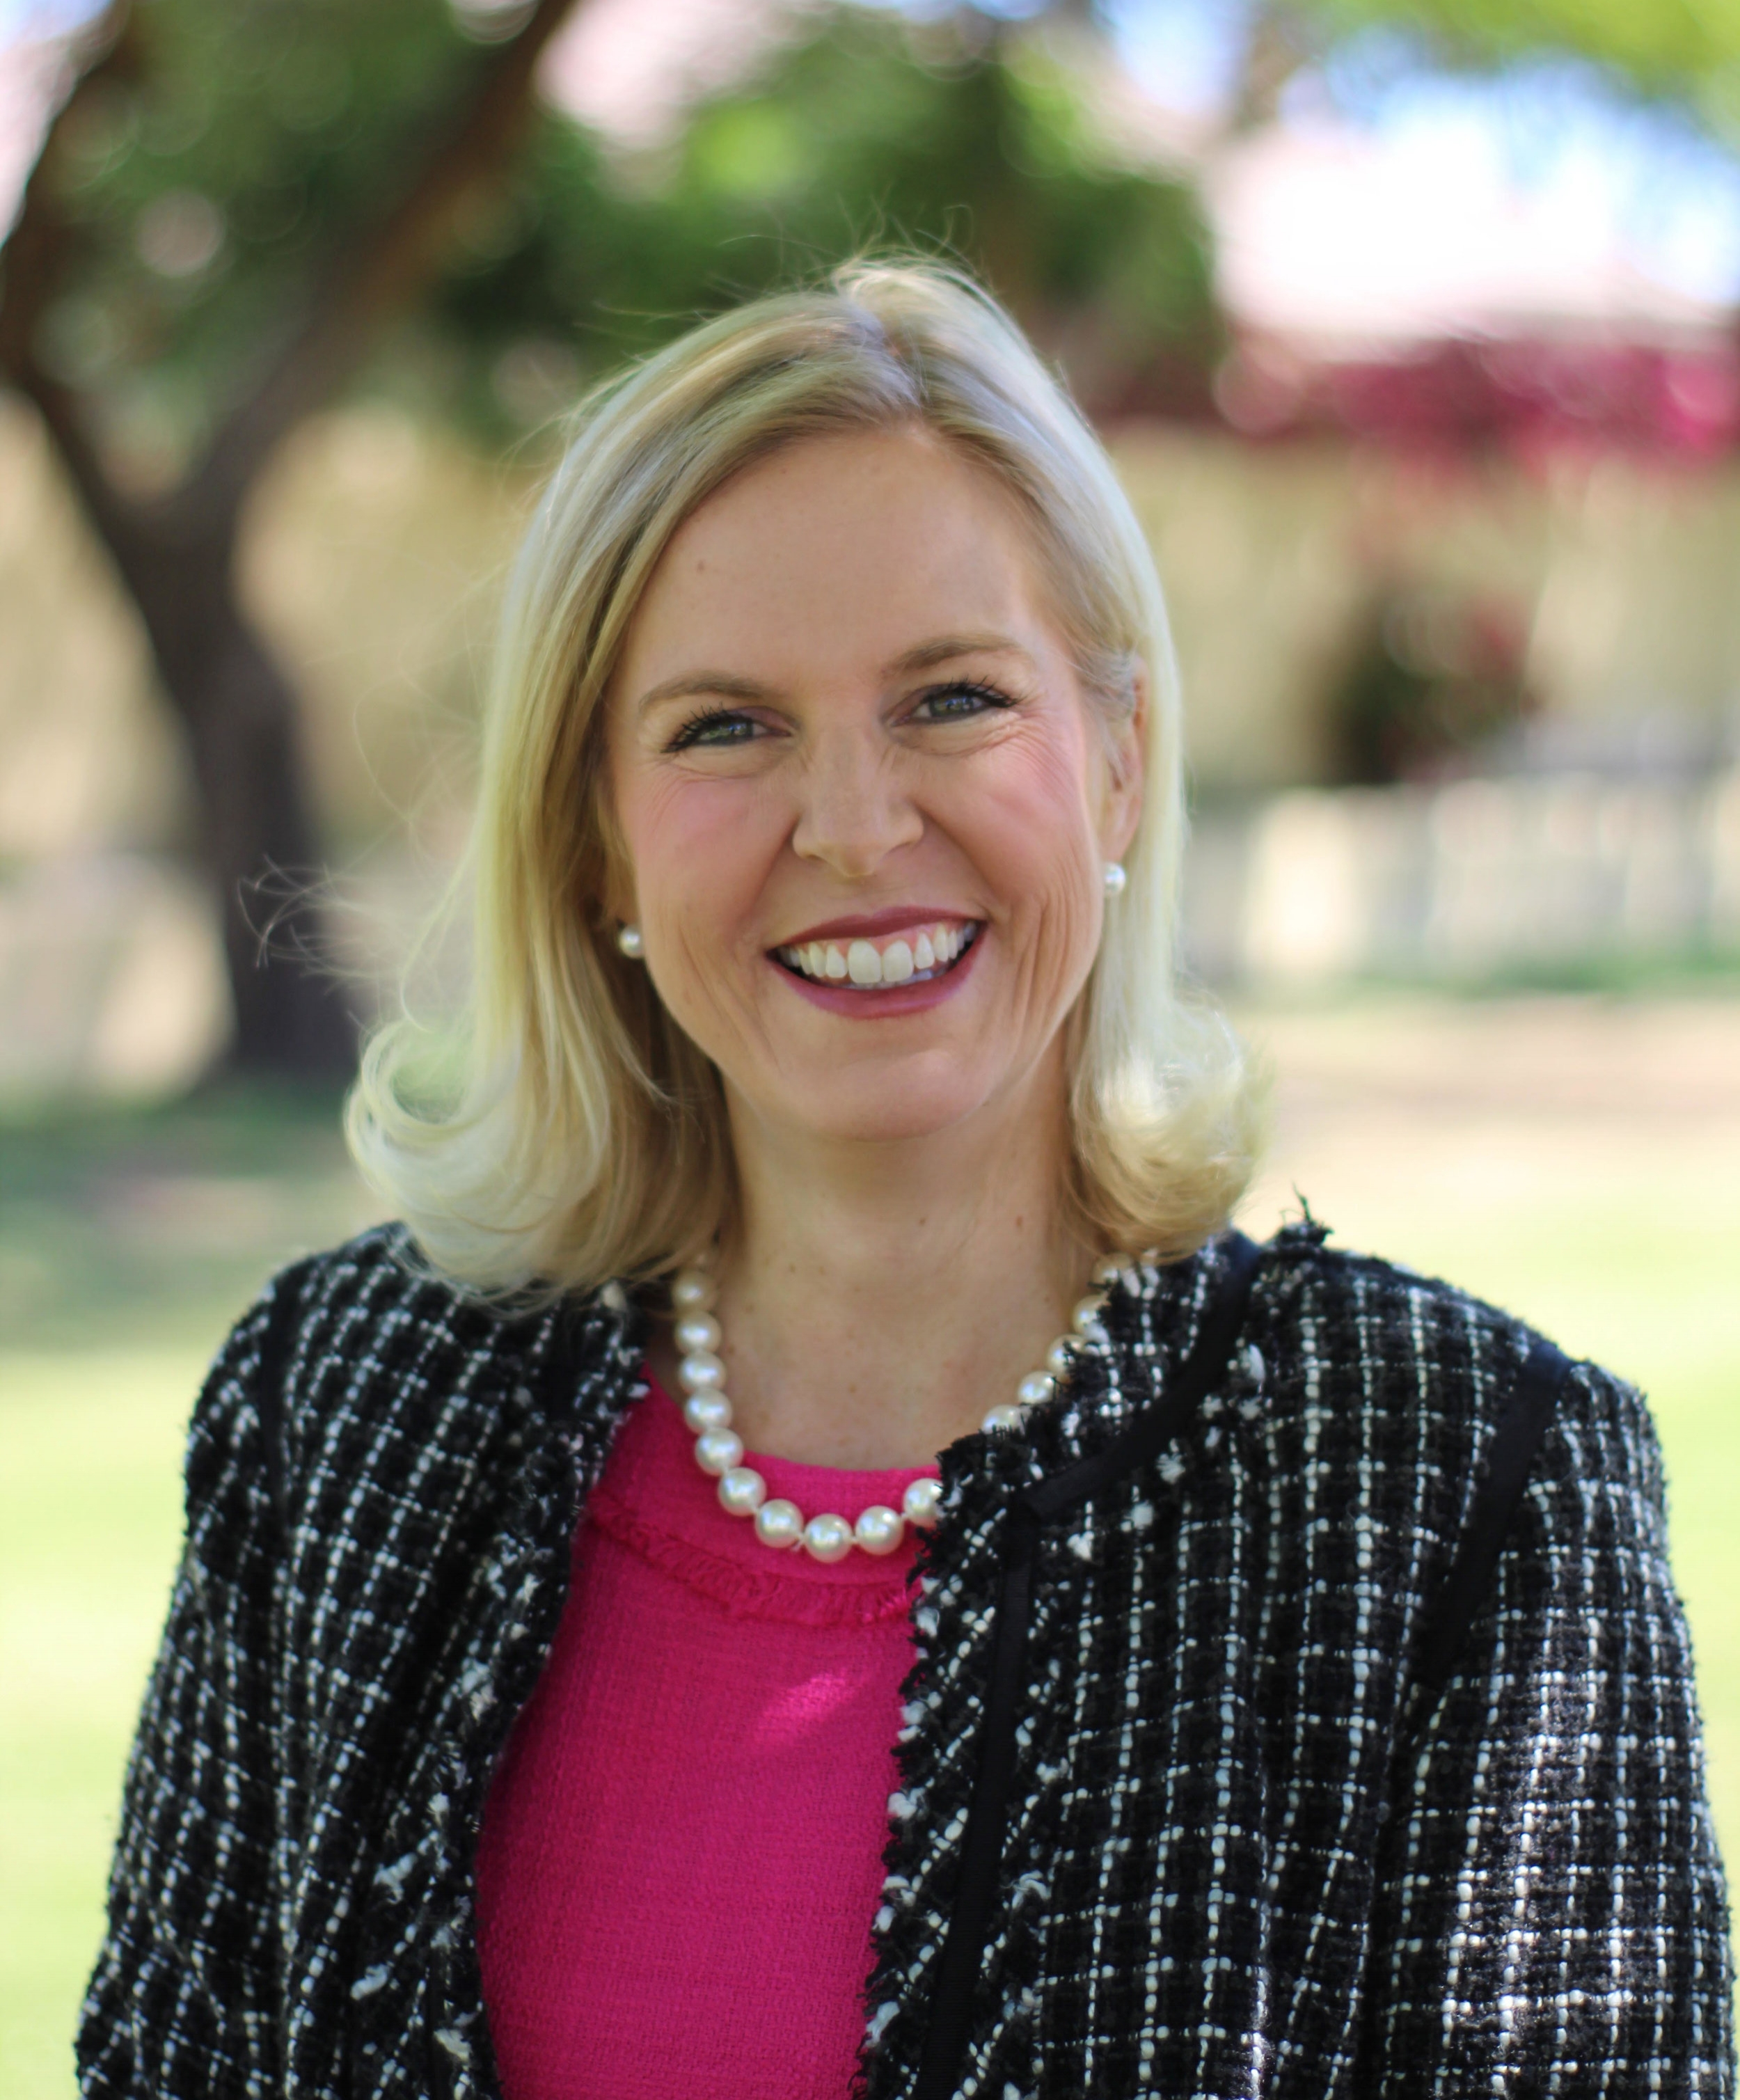 ABOUT KRISTINA  - A life-long Republican and successful small business owner, Kristina Kelly is running for State Senate in LD 23 to fight for conservative values and serve her community with integrity. Her core beliefs include reducing the size and scope of government, growing our economy through market-based solutions, and providing a high-quality education for all children. Learn More